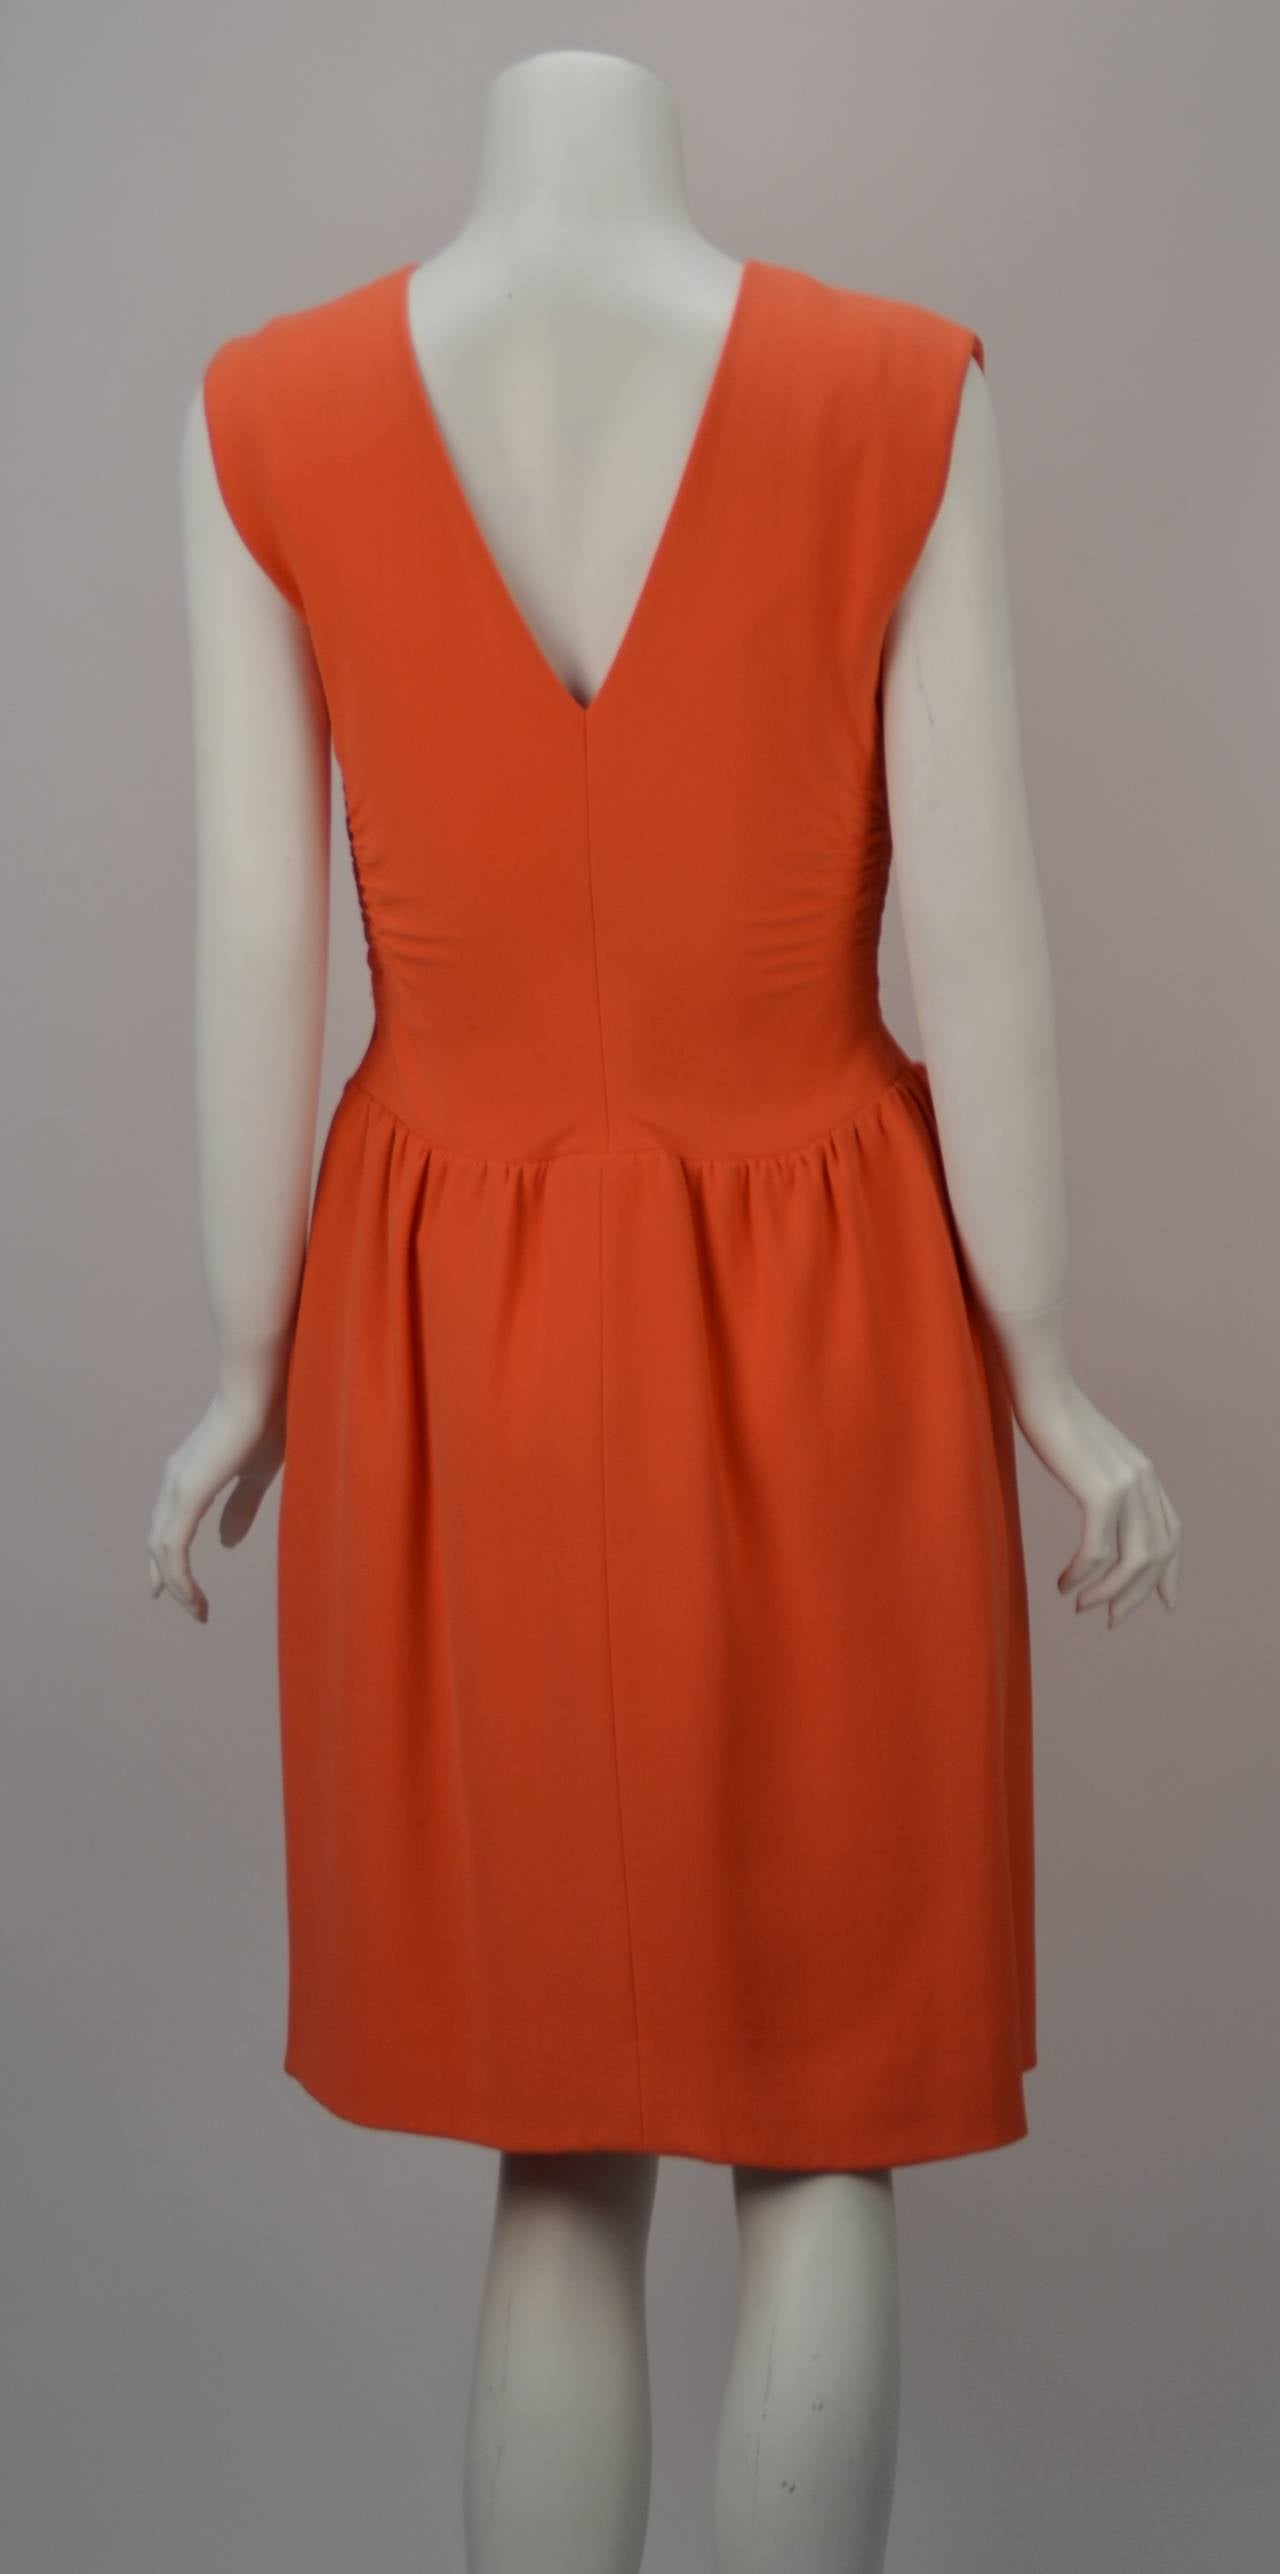 Norman Norell knee length coral dress. Ruching at sides and a gathered waistline with center accent makes this dress very special. Coral is a wonderful color for spring and this vintage stunner looks fresh. Rock it with some gold heels and